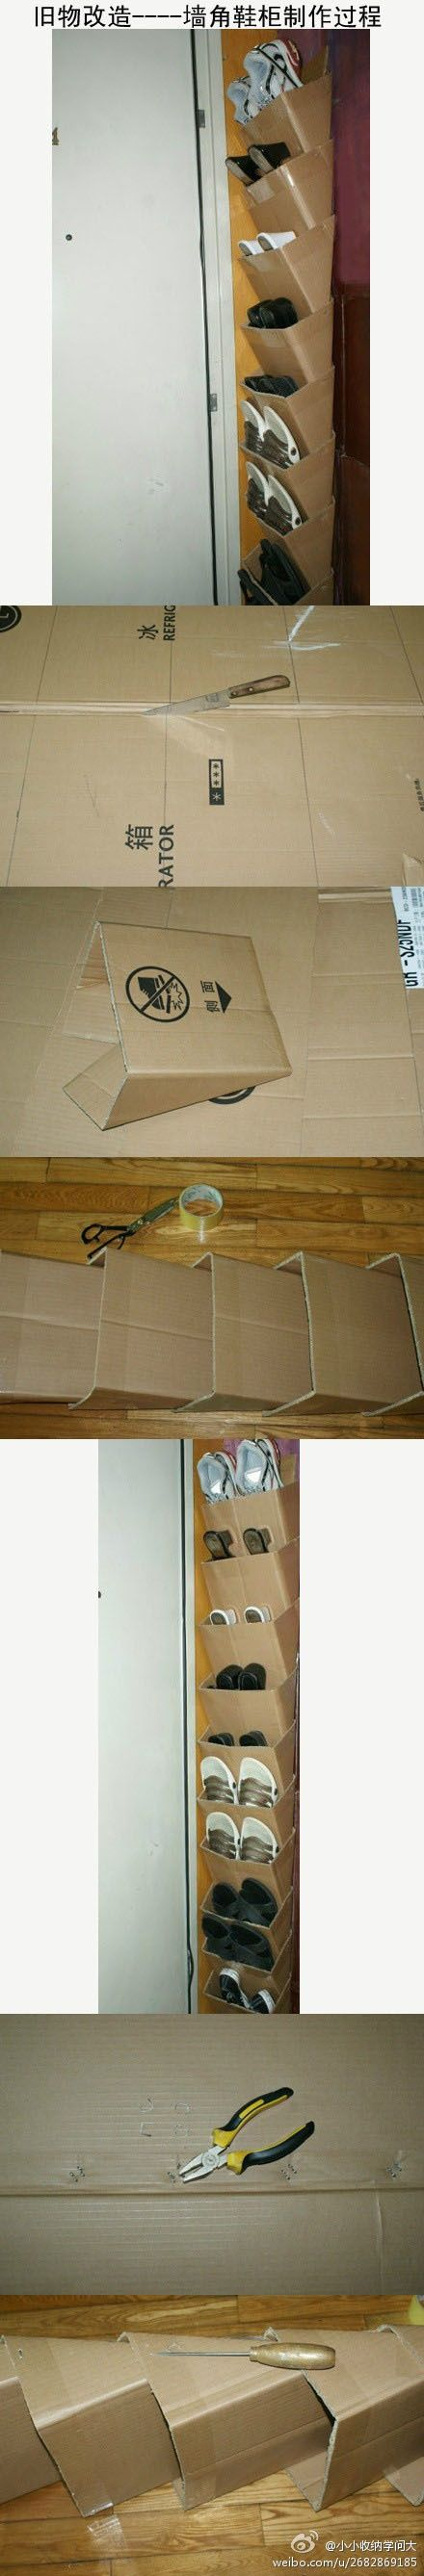 diy carton shoes organizer in 2018 diy ideas pinterest karton pappe und schuhaufbewahrung. Black Bedroom Furniture Sets. Home Design Ideas